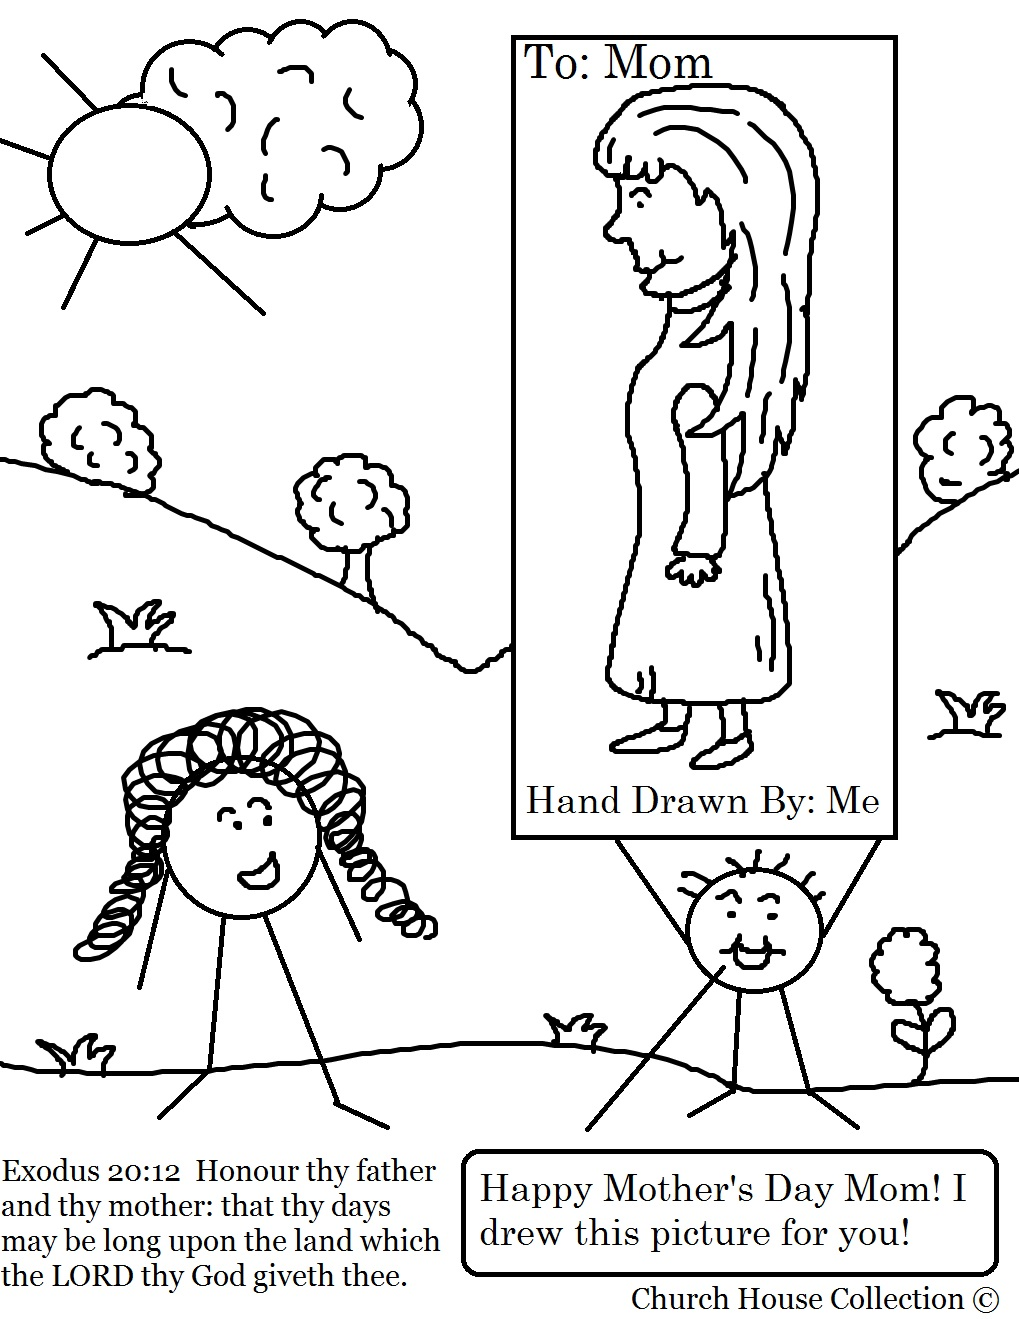 Mothers day coloring sheets for sunday school - Mother S Day Coloring Pages For Sunday School Mother S Day Little Kid Drew Mom A Picture Coloring Page